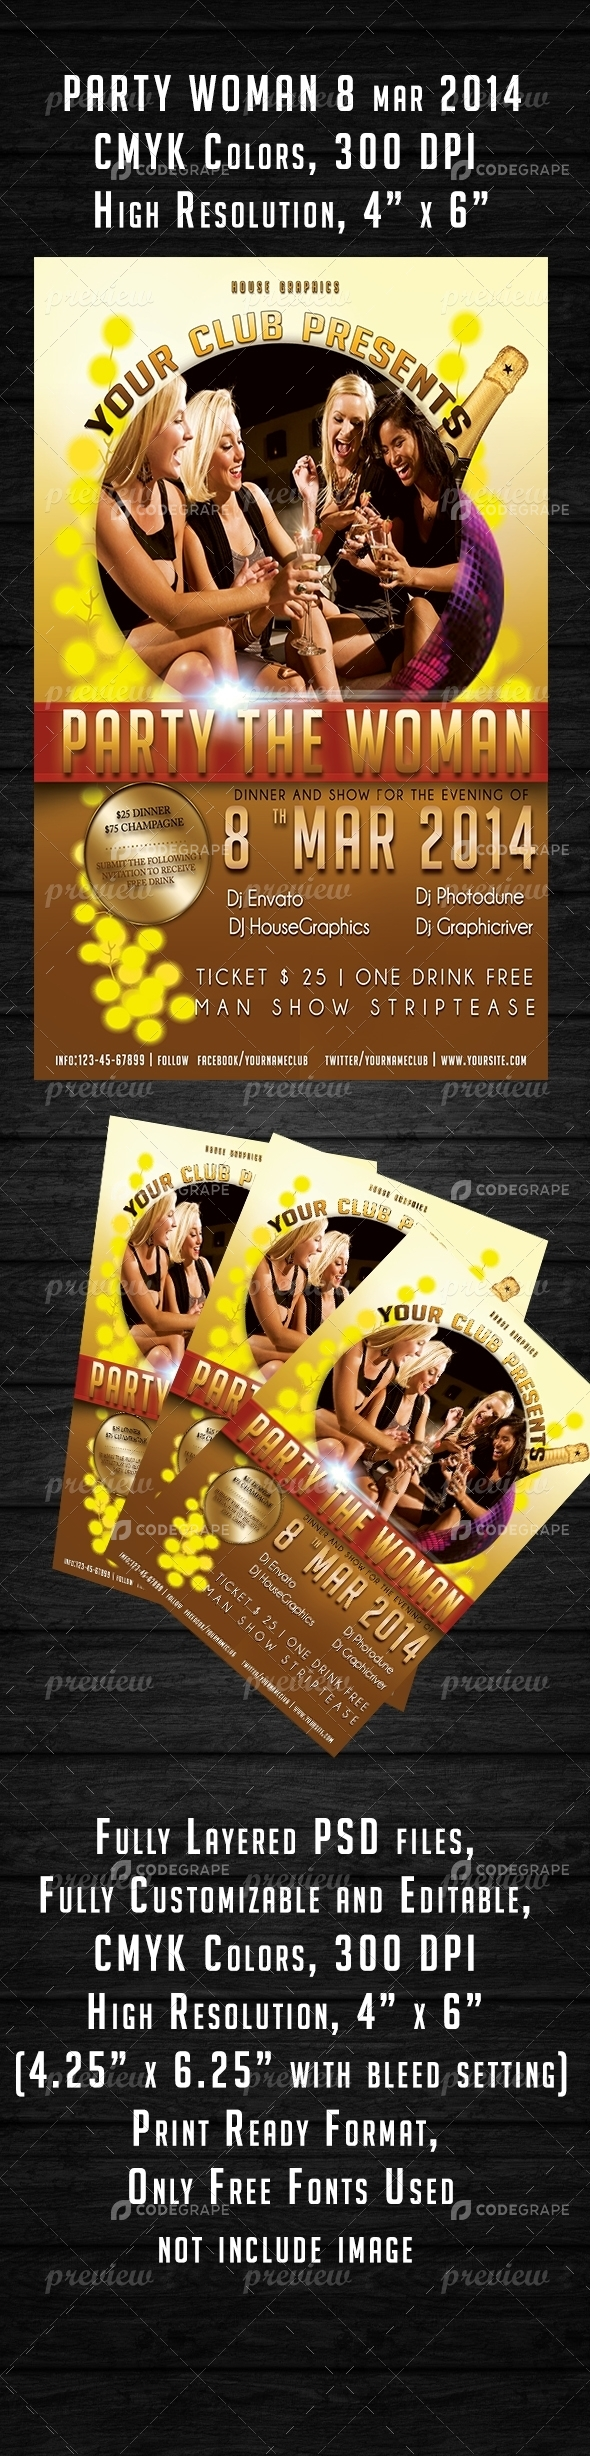 Party Woman Flyer